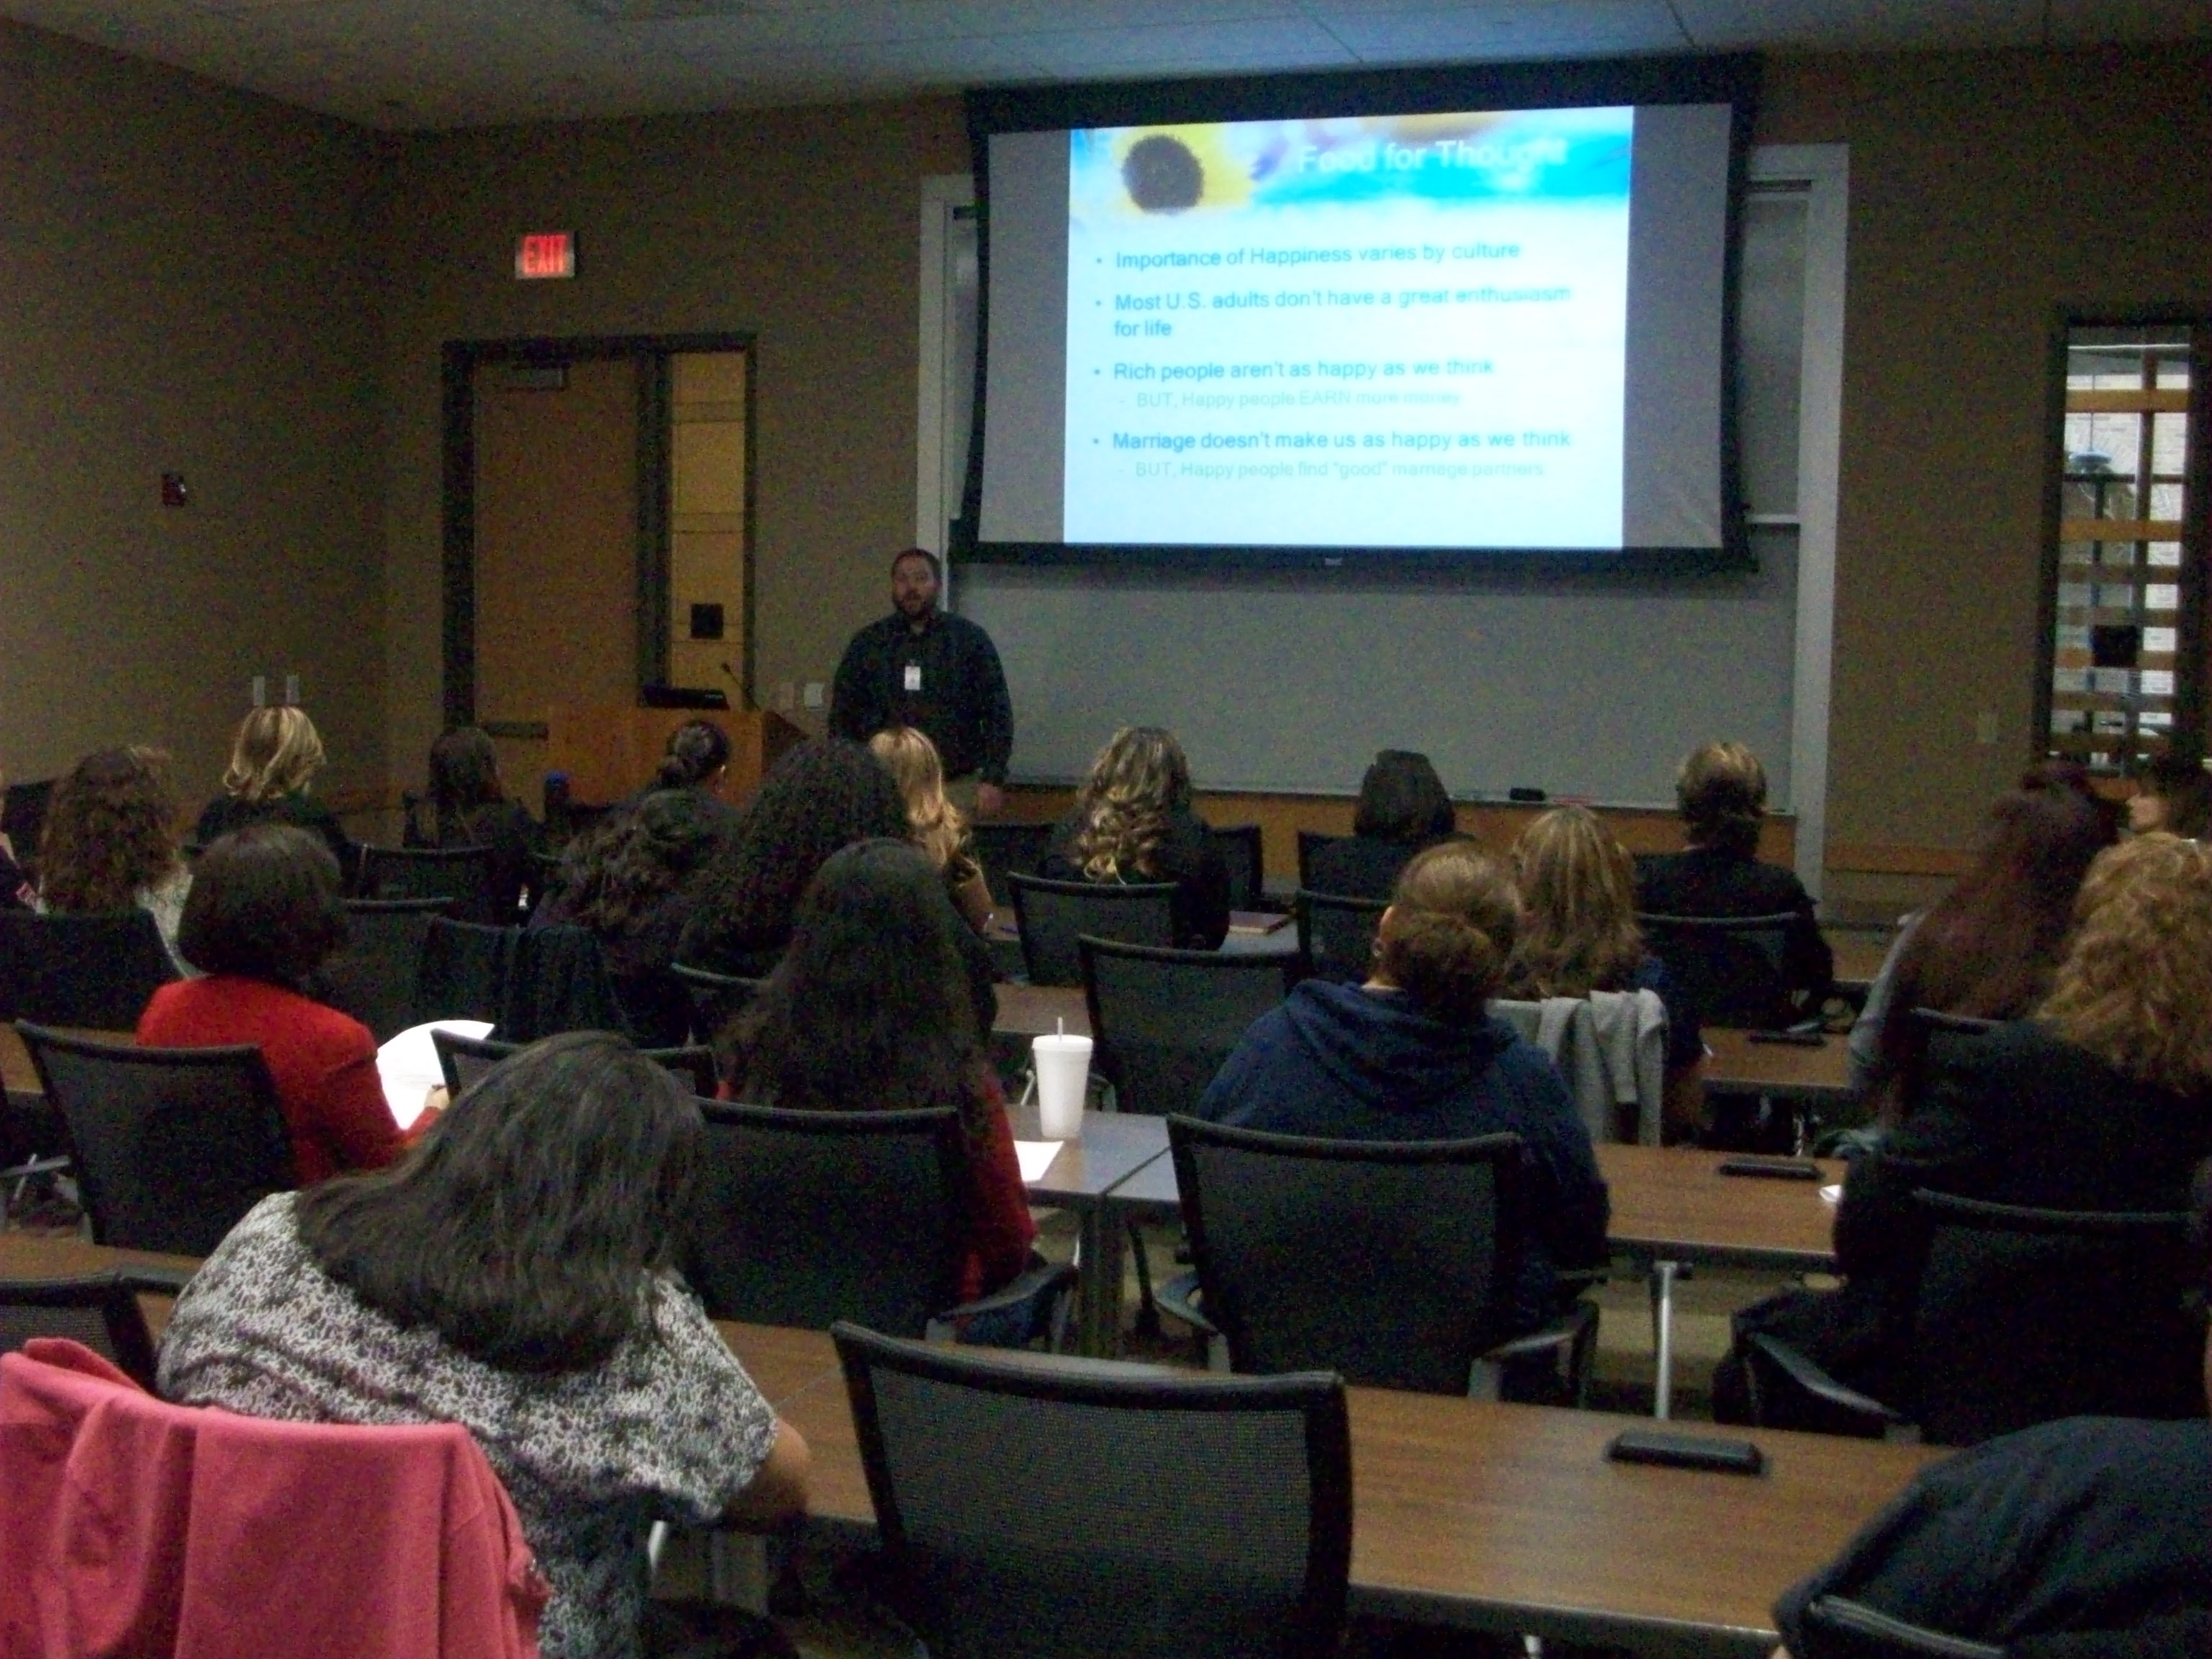 Texas Tech University Health Sciences Center El Paso presentation about happiness.